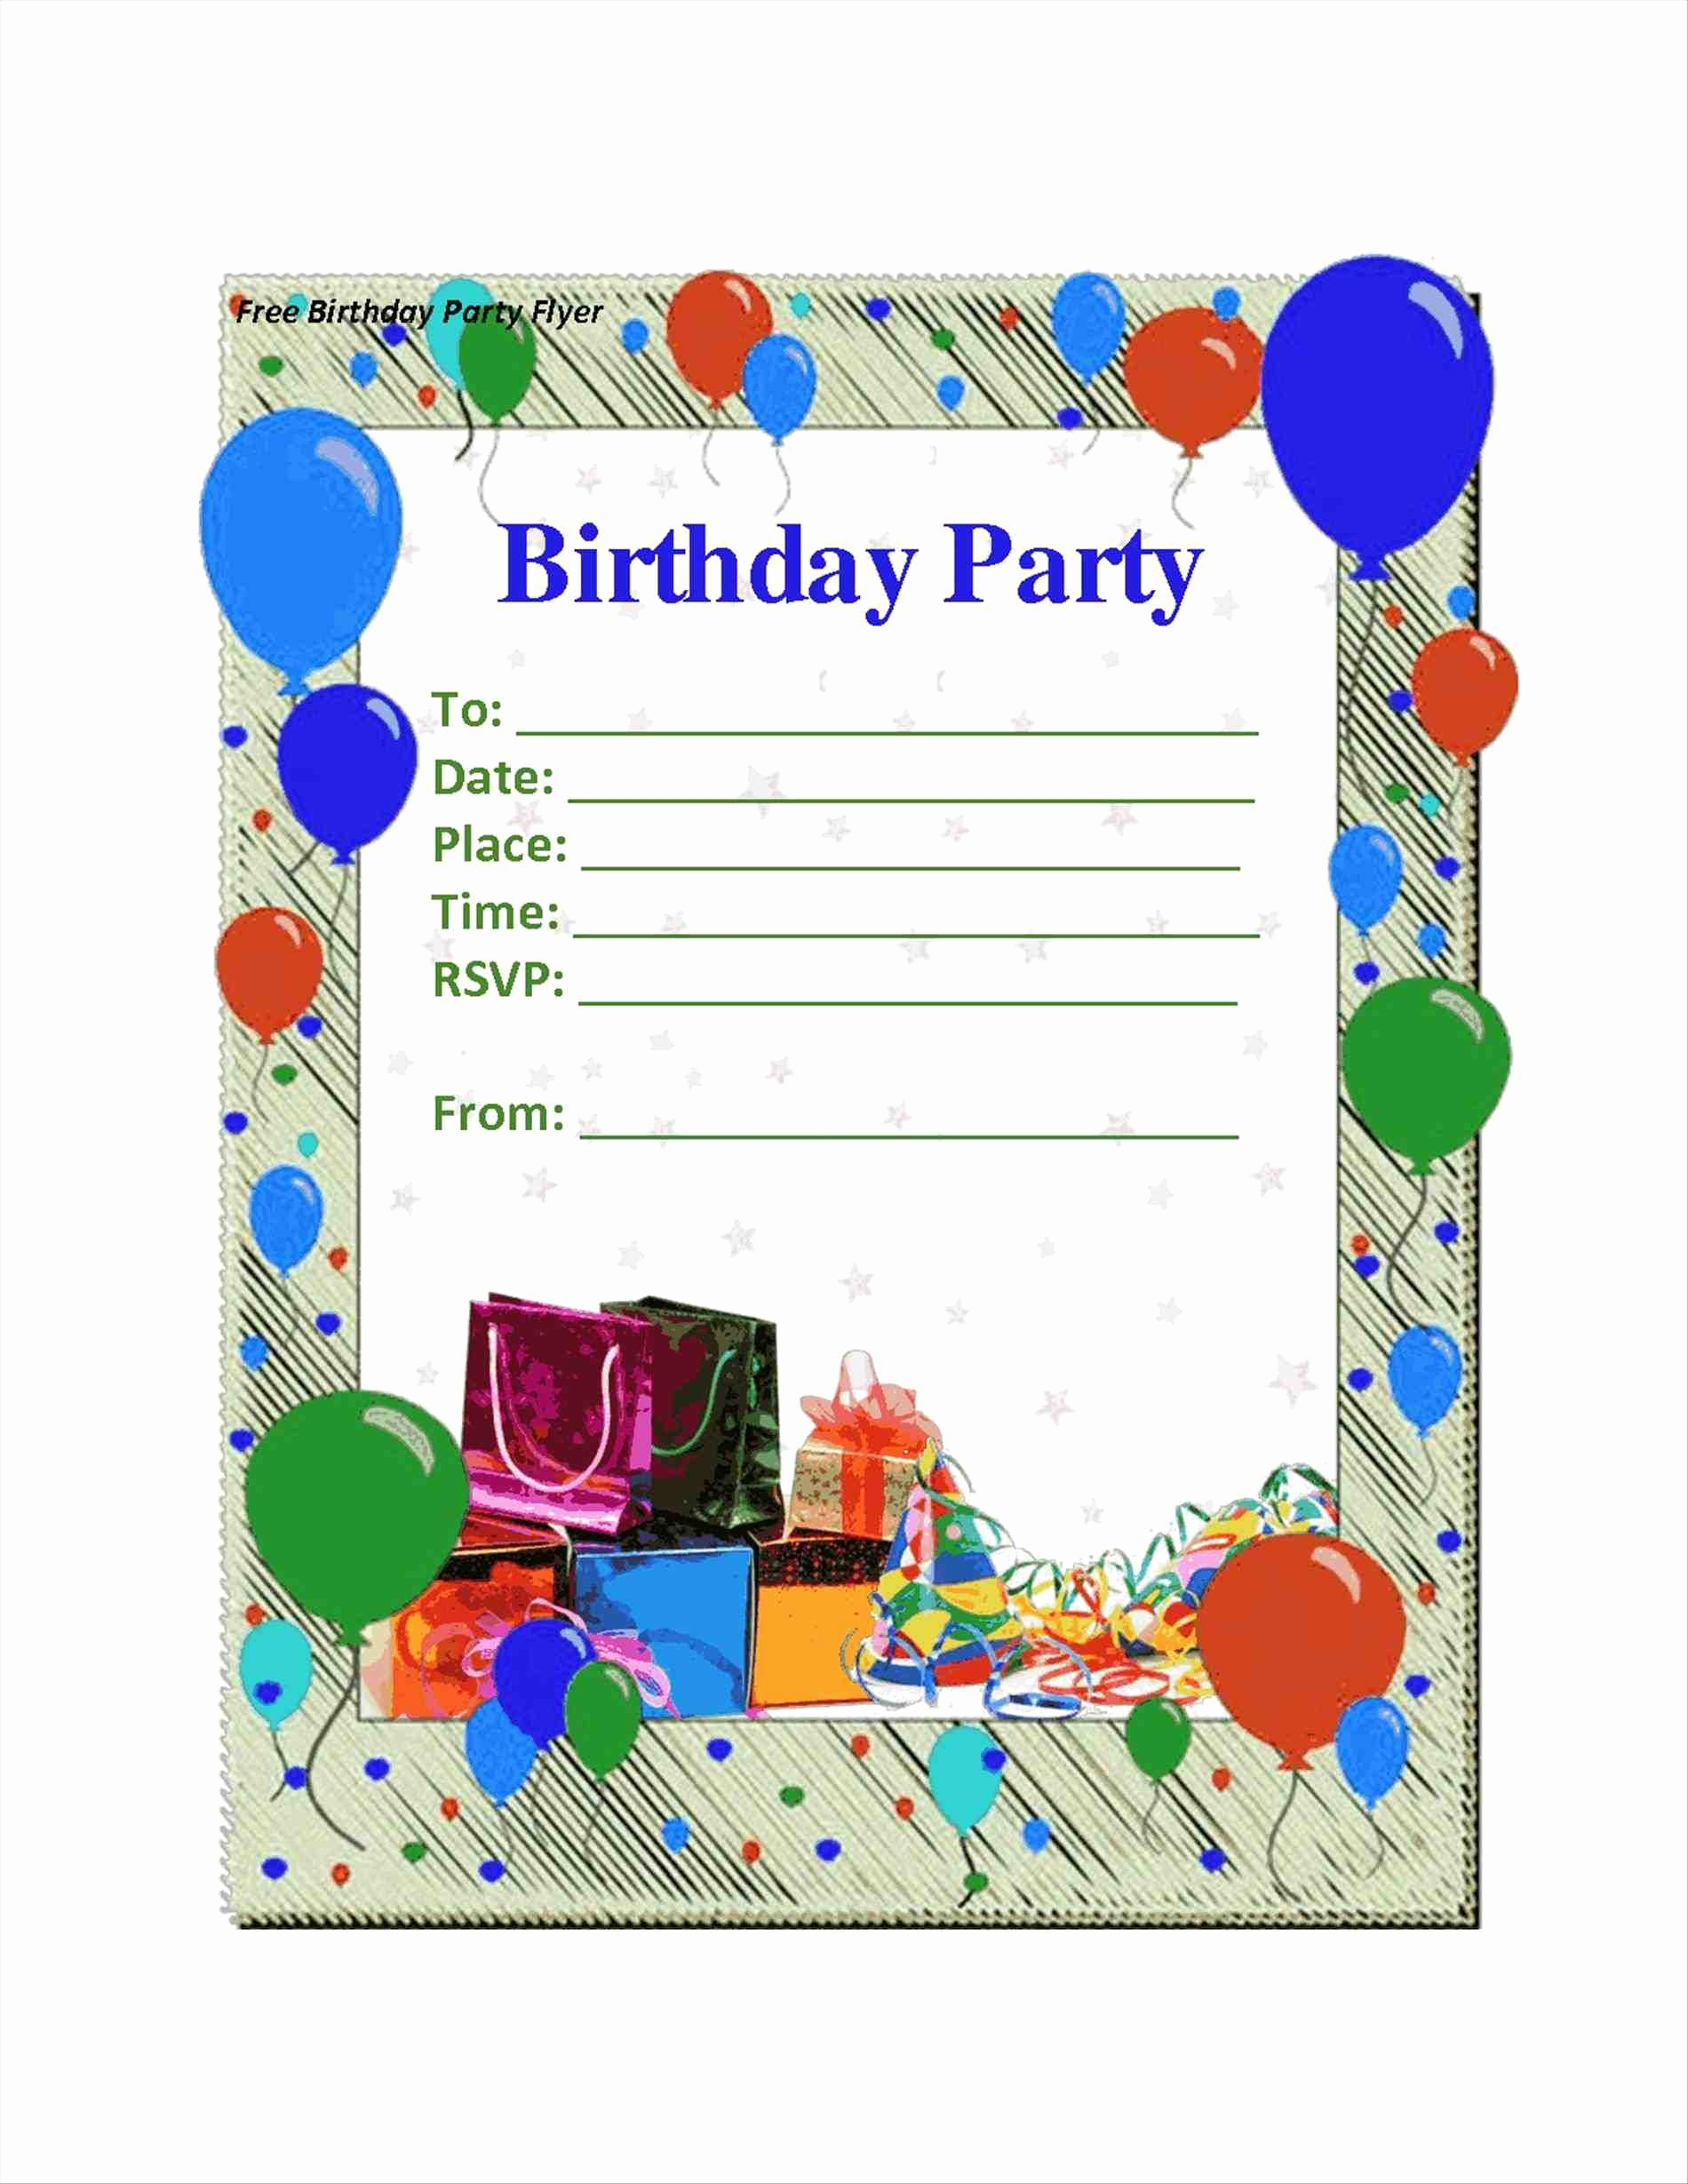 free invitation cards for birthday party ; birthday-card-for-kid-boy-beautiful-birthday-party-invitation-cards-free-printable-4birthdayfo-of-birthday-card-for-kid-boy